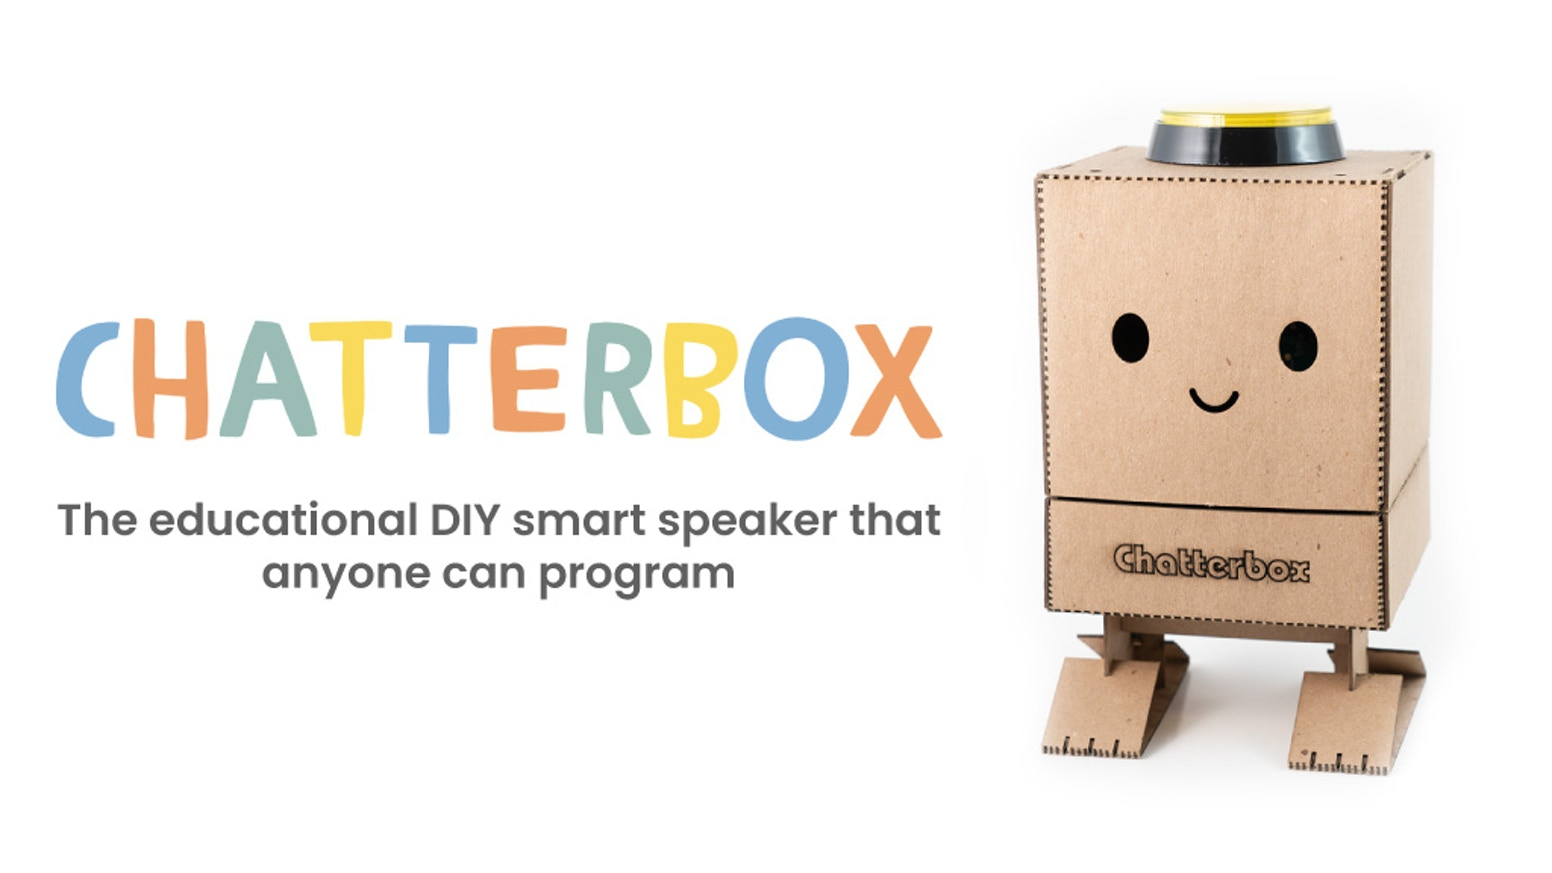 Chatterbox is the first DIY smart speaker that puts privacy first.